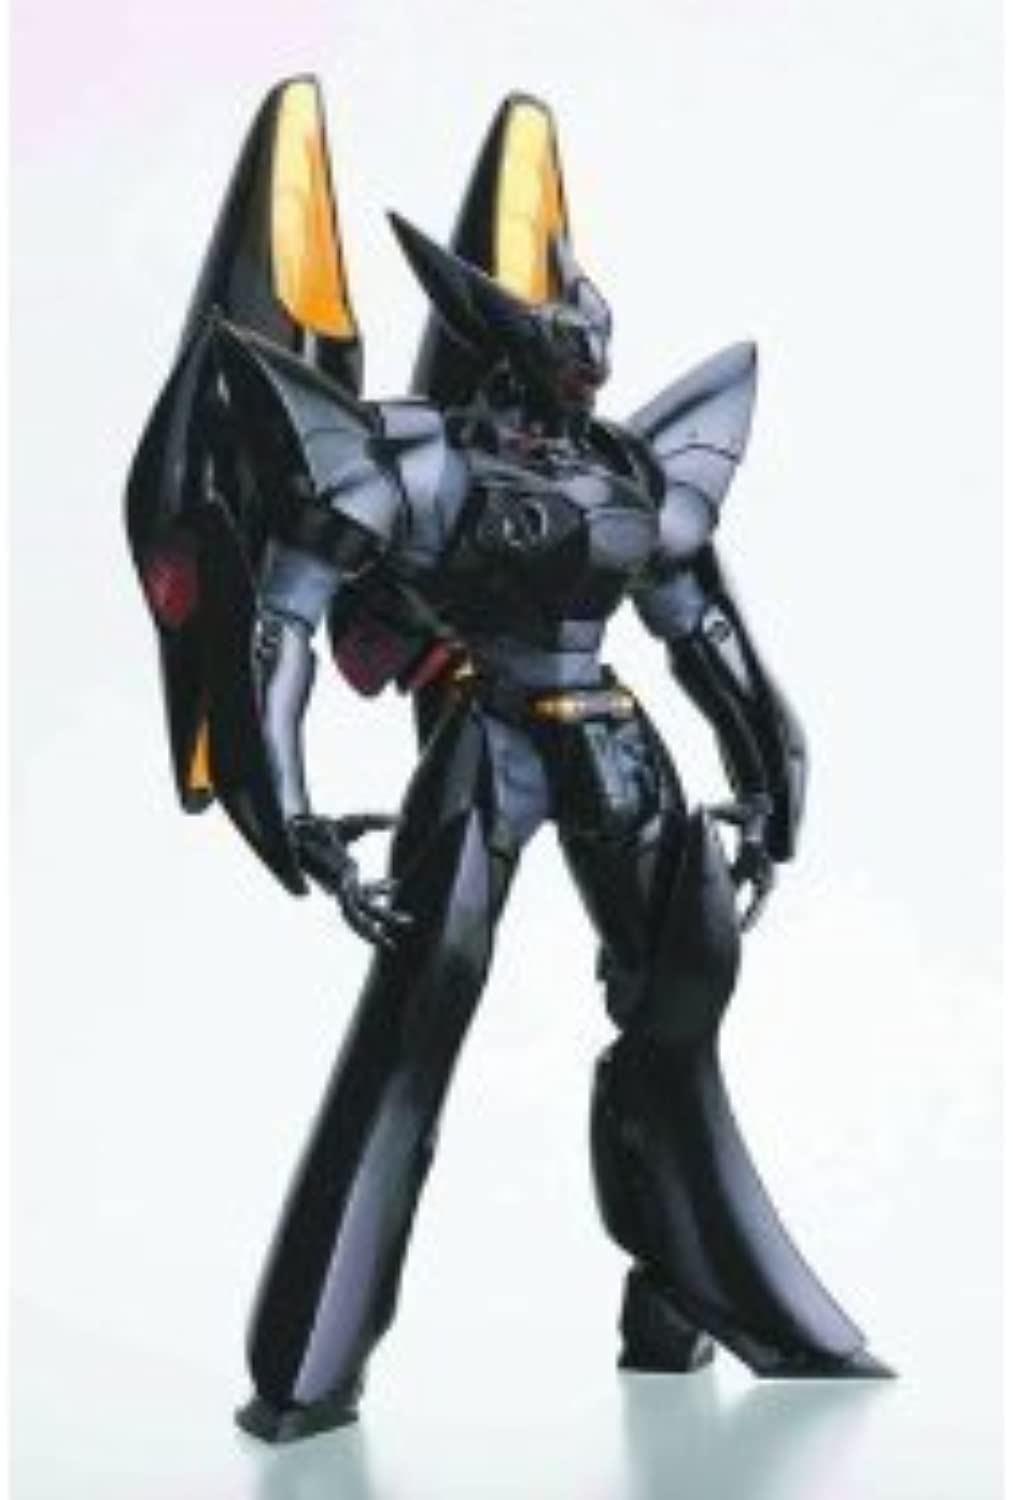 Patlabor Revoltech Type-J9 Griffon Action Figure by Diamond